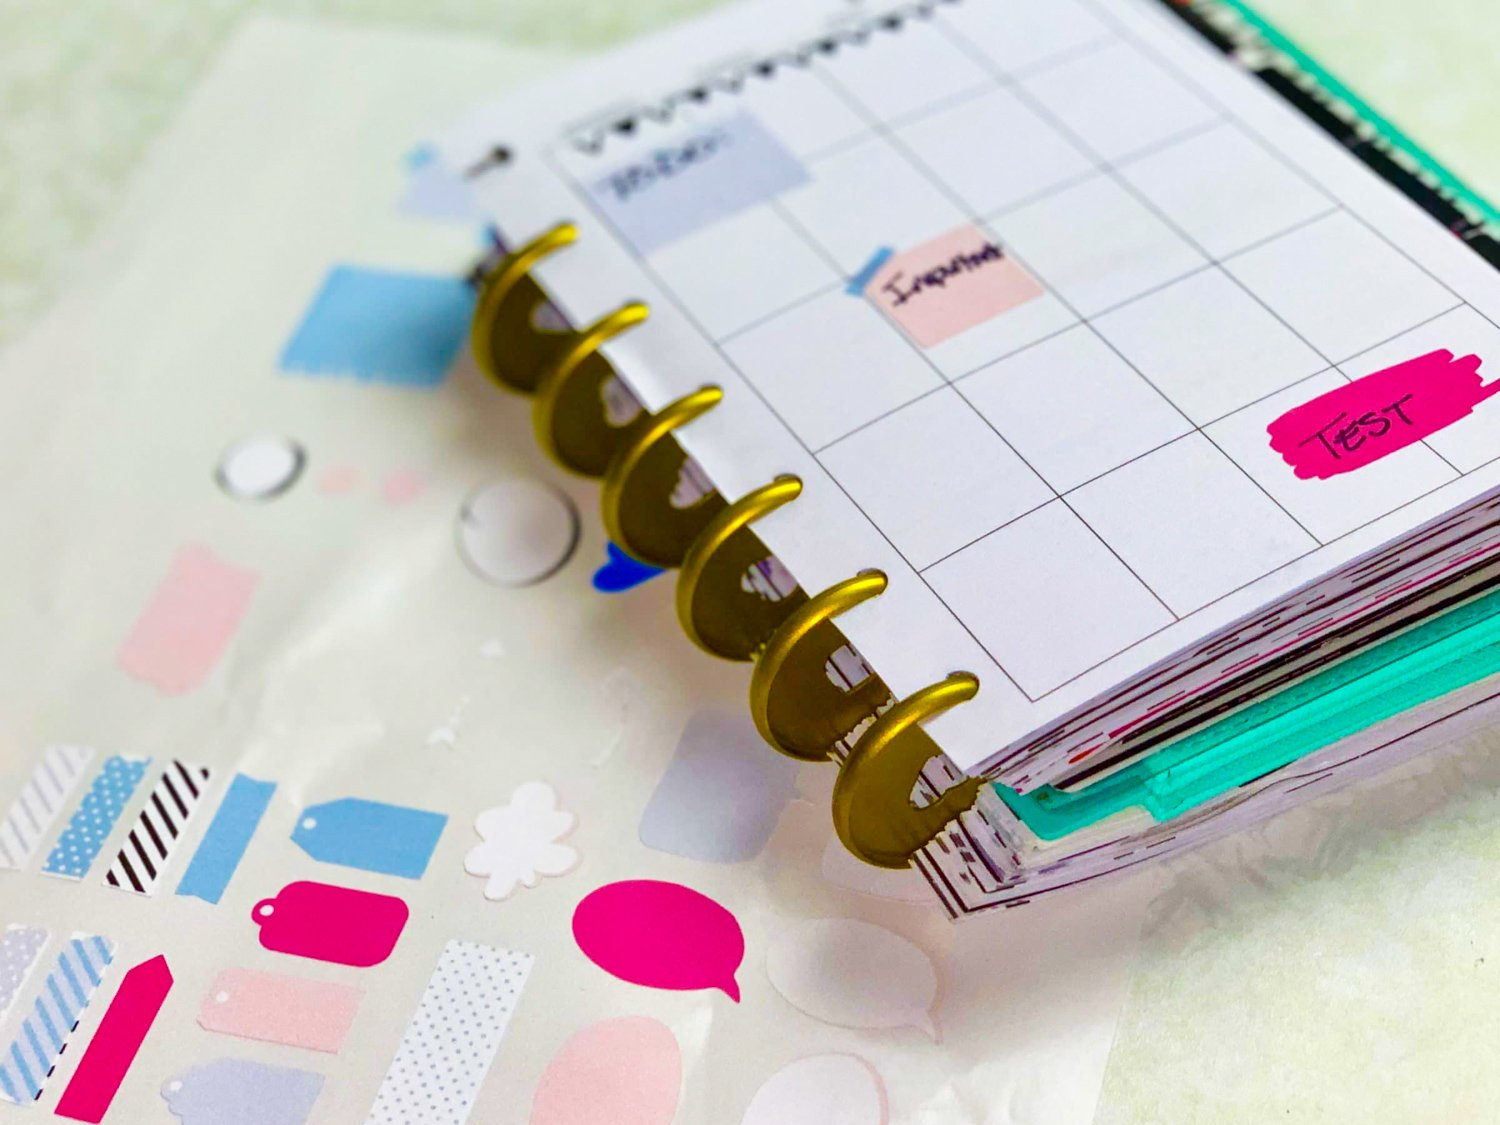 cricut stickers next with a happy planner on top of them